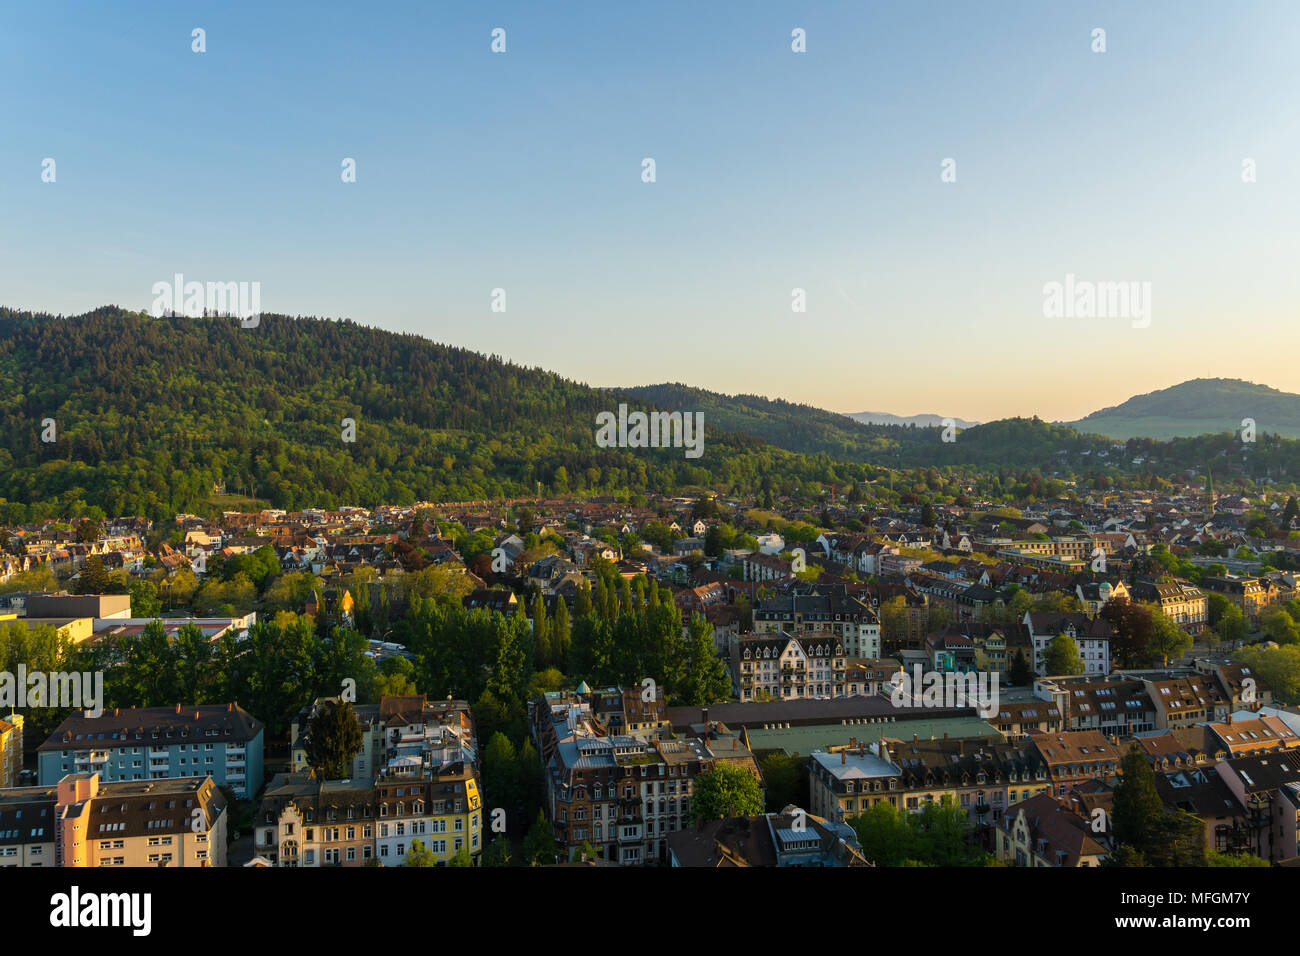 Germany, Green city Freiburg im Breisgau from above between nature forest landscape Stock Photo